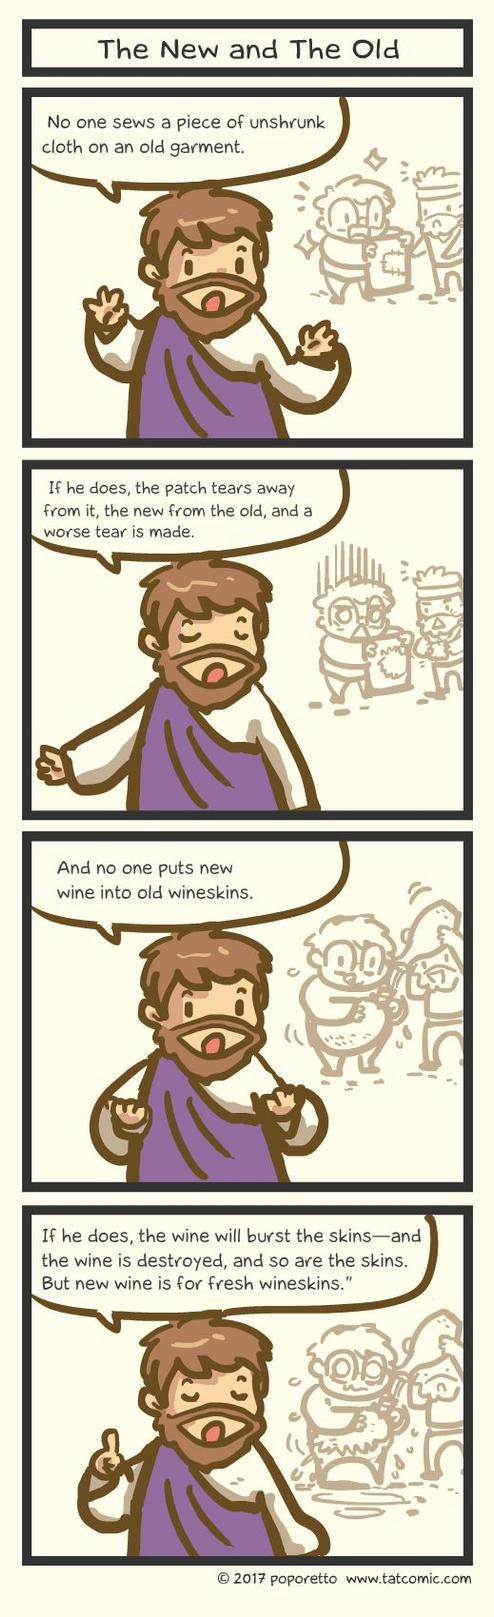 Book of Mark - The New and The Old by Poporetto